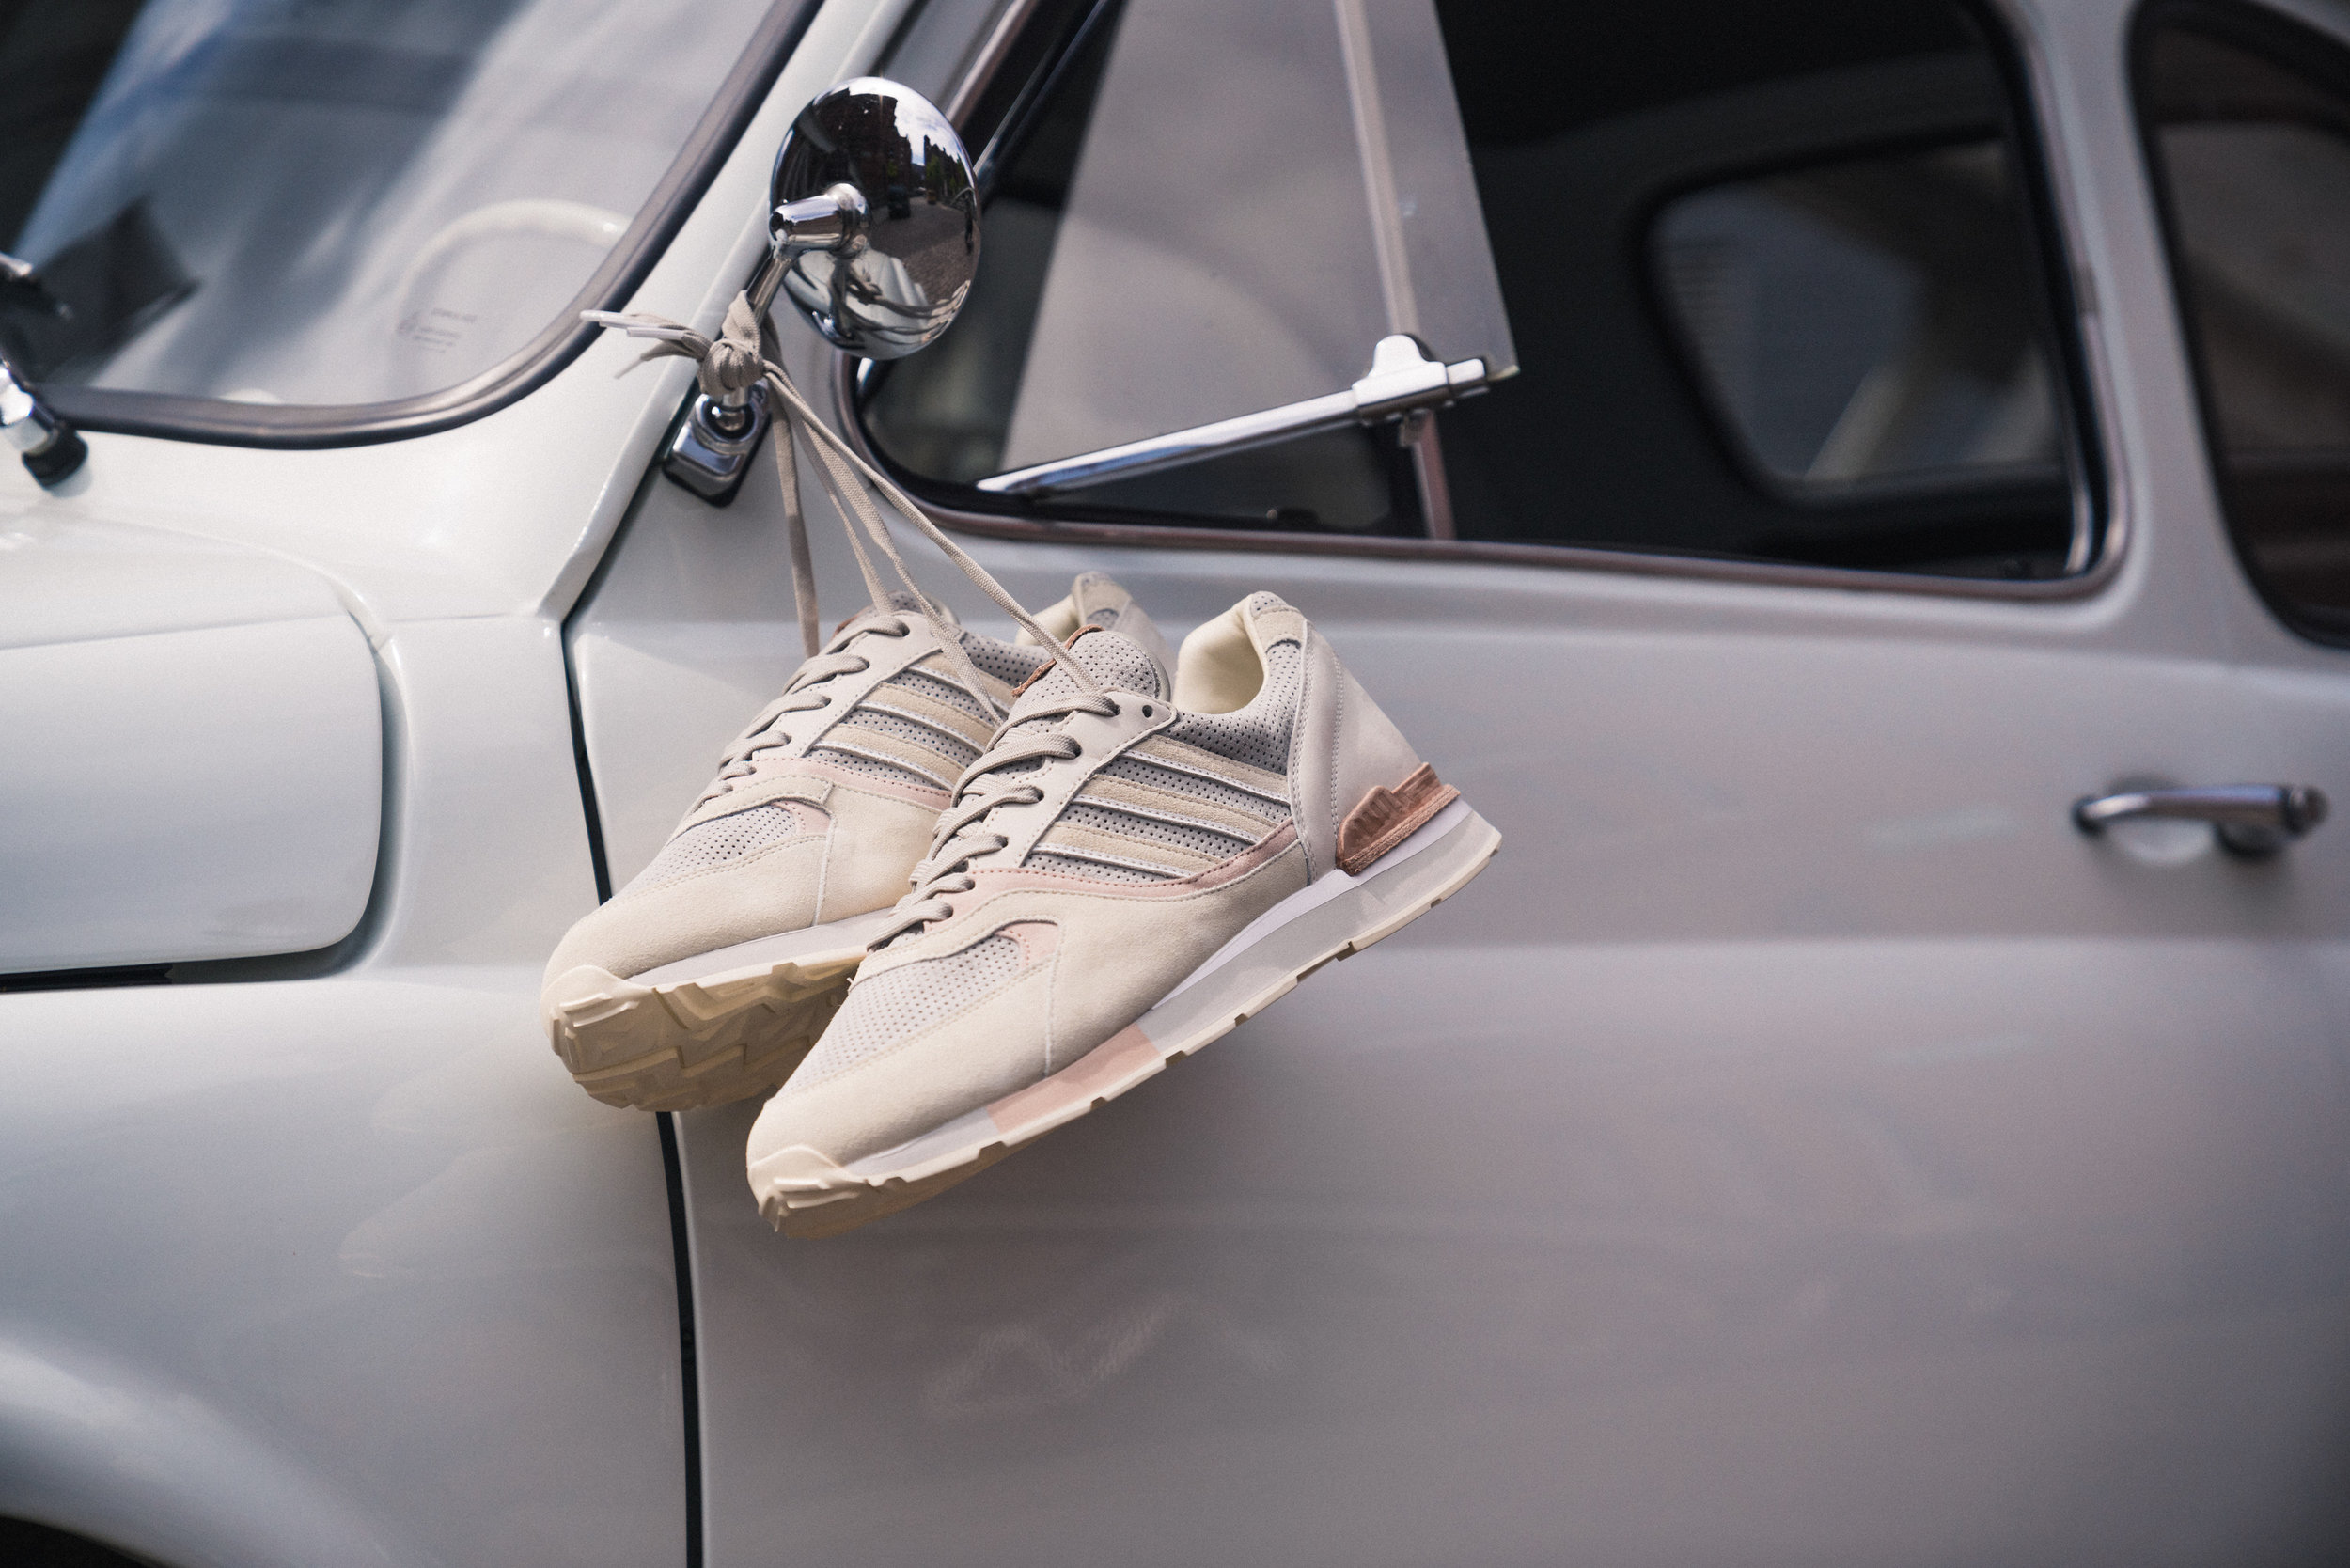 SOLEBOX_ADIDAS_CONSORTIUM_QUESENCE_BY_KANE_MODELLED_BY_1WASTEDTALENT-13.jpg